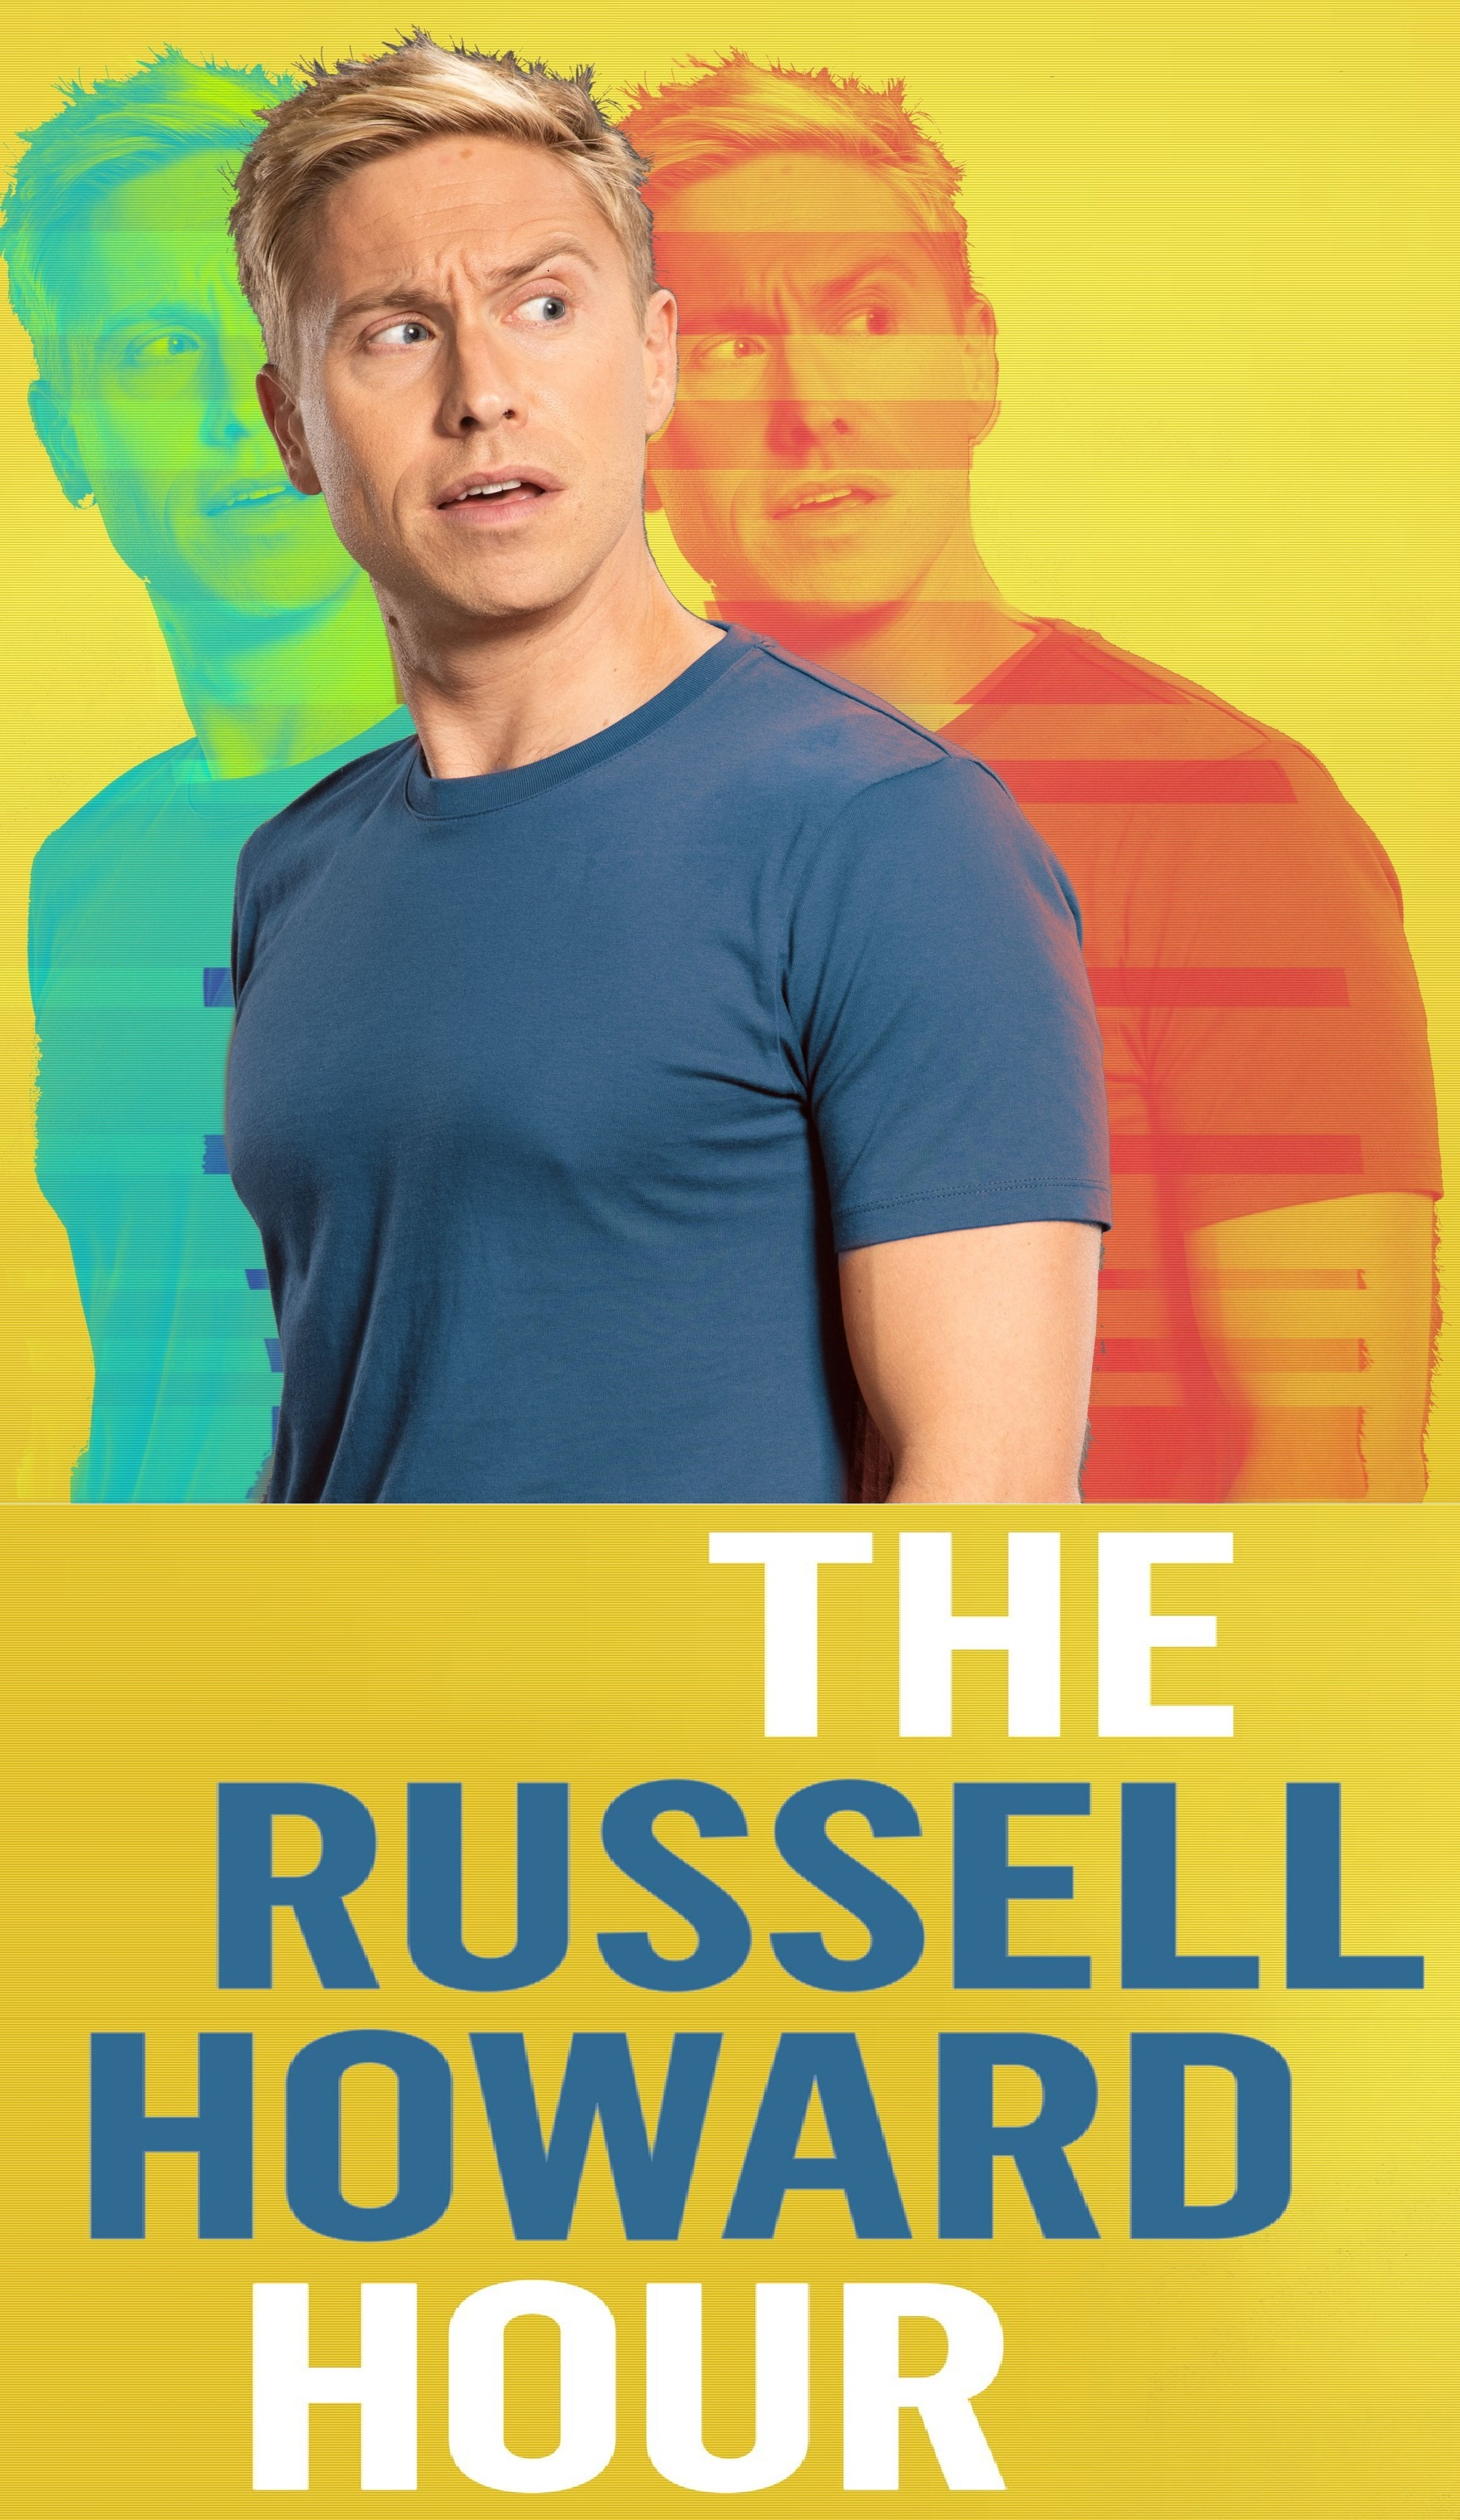 The Russell Howard Hour - Season 4 Episode 8